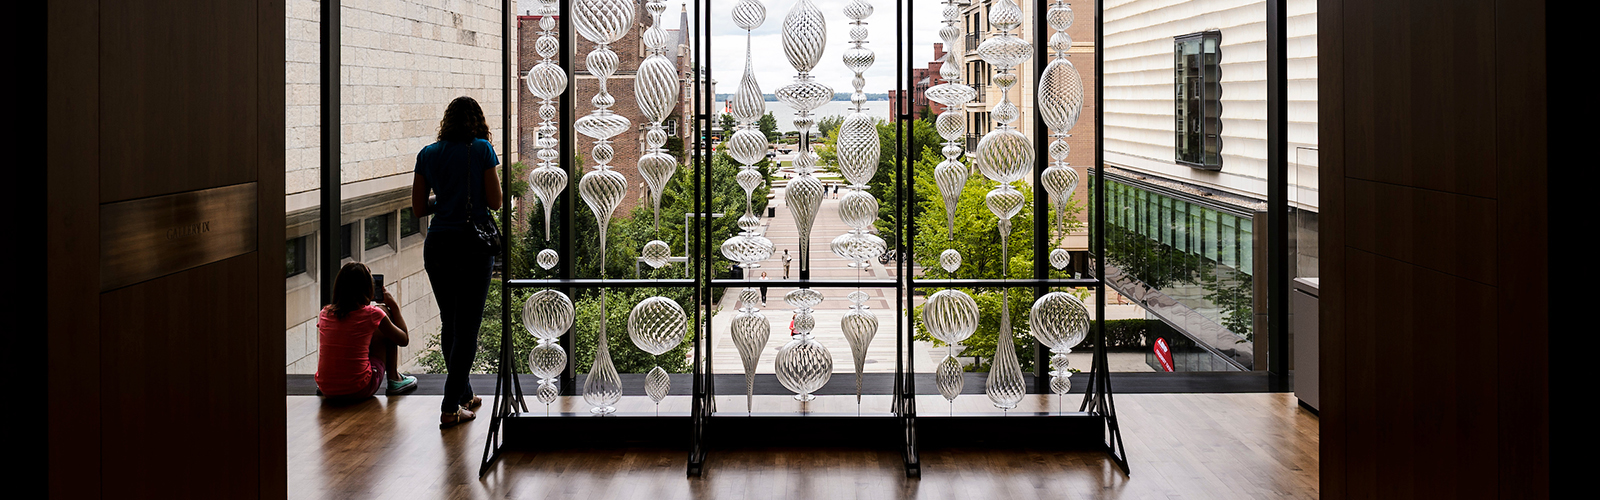 a display of blown glass ornaments before a window in the Chazen museum